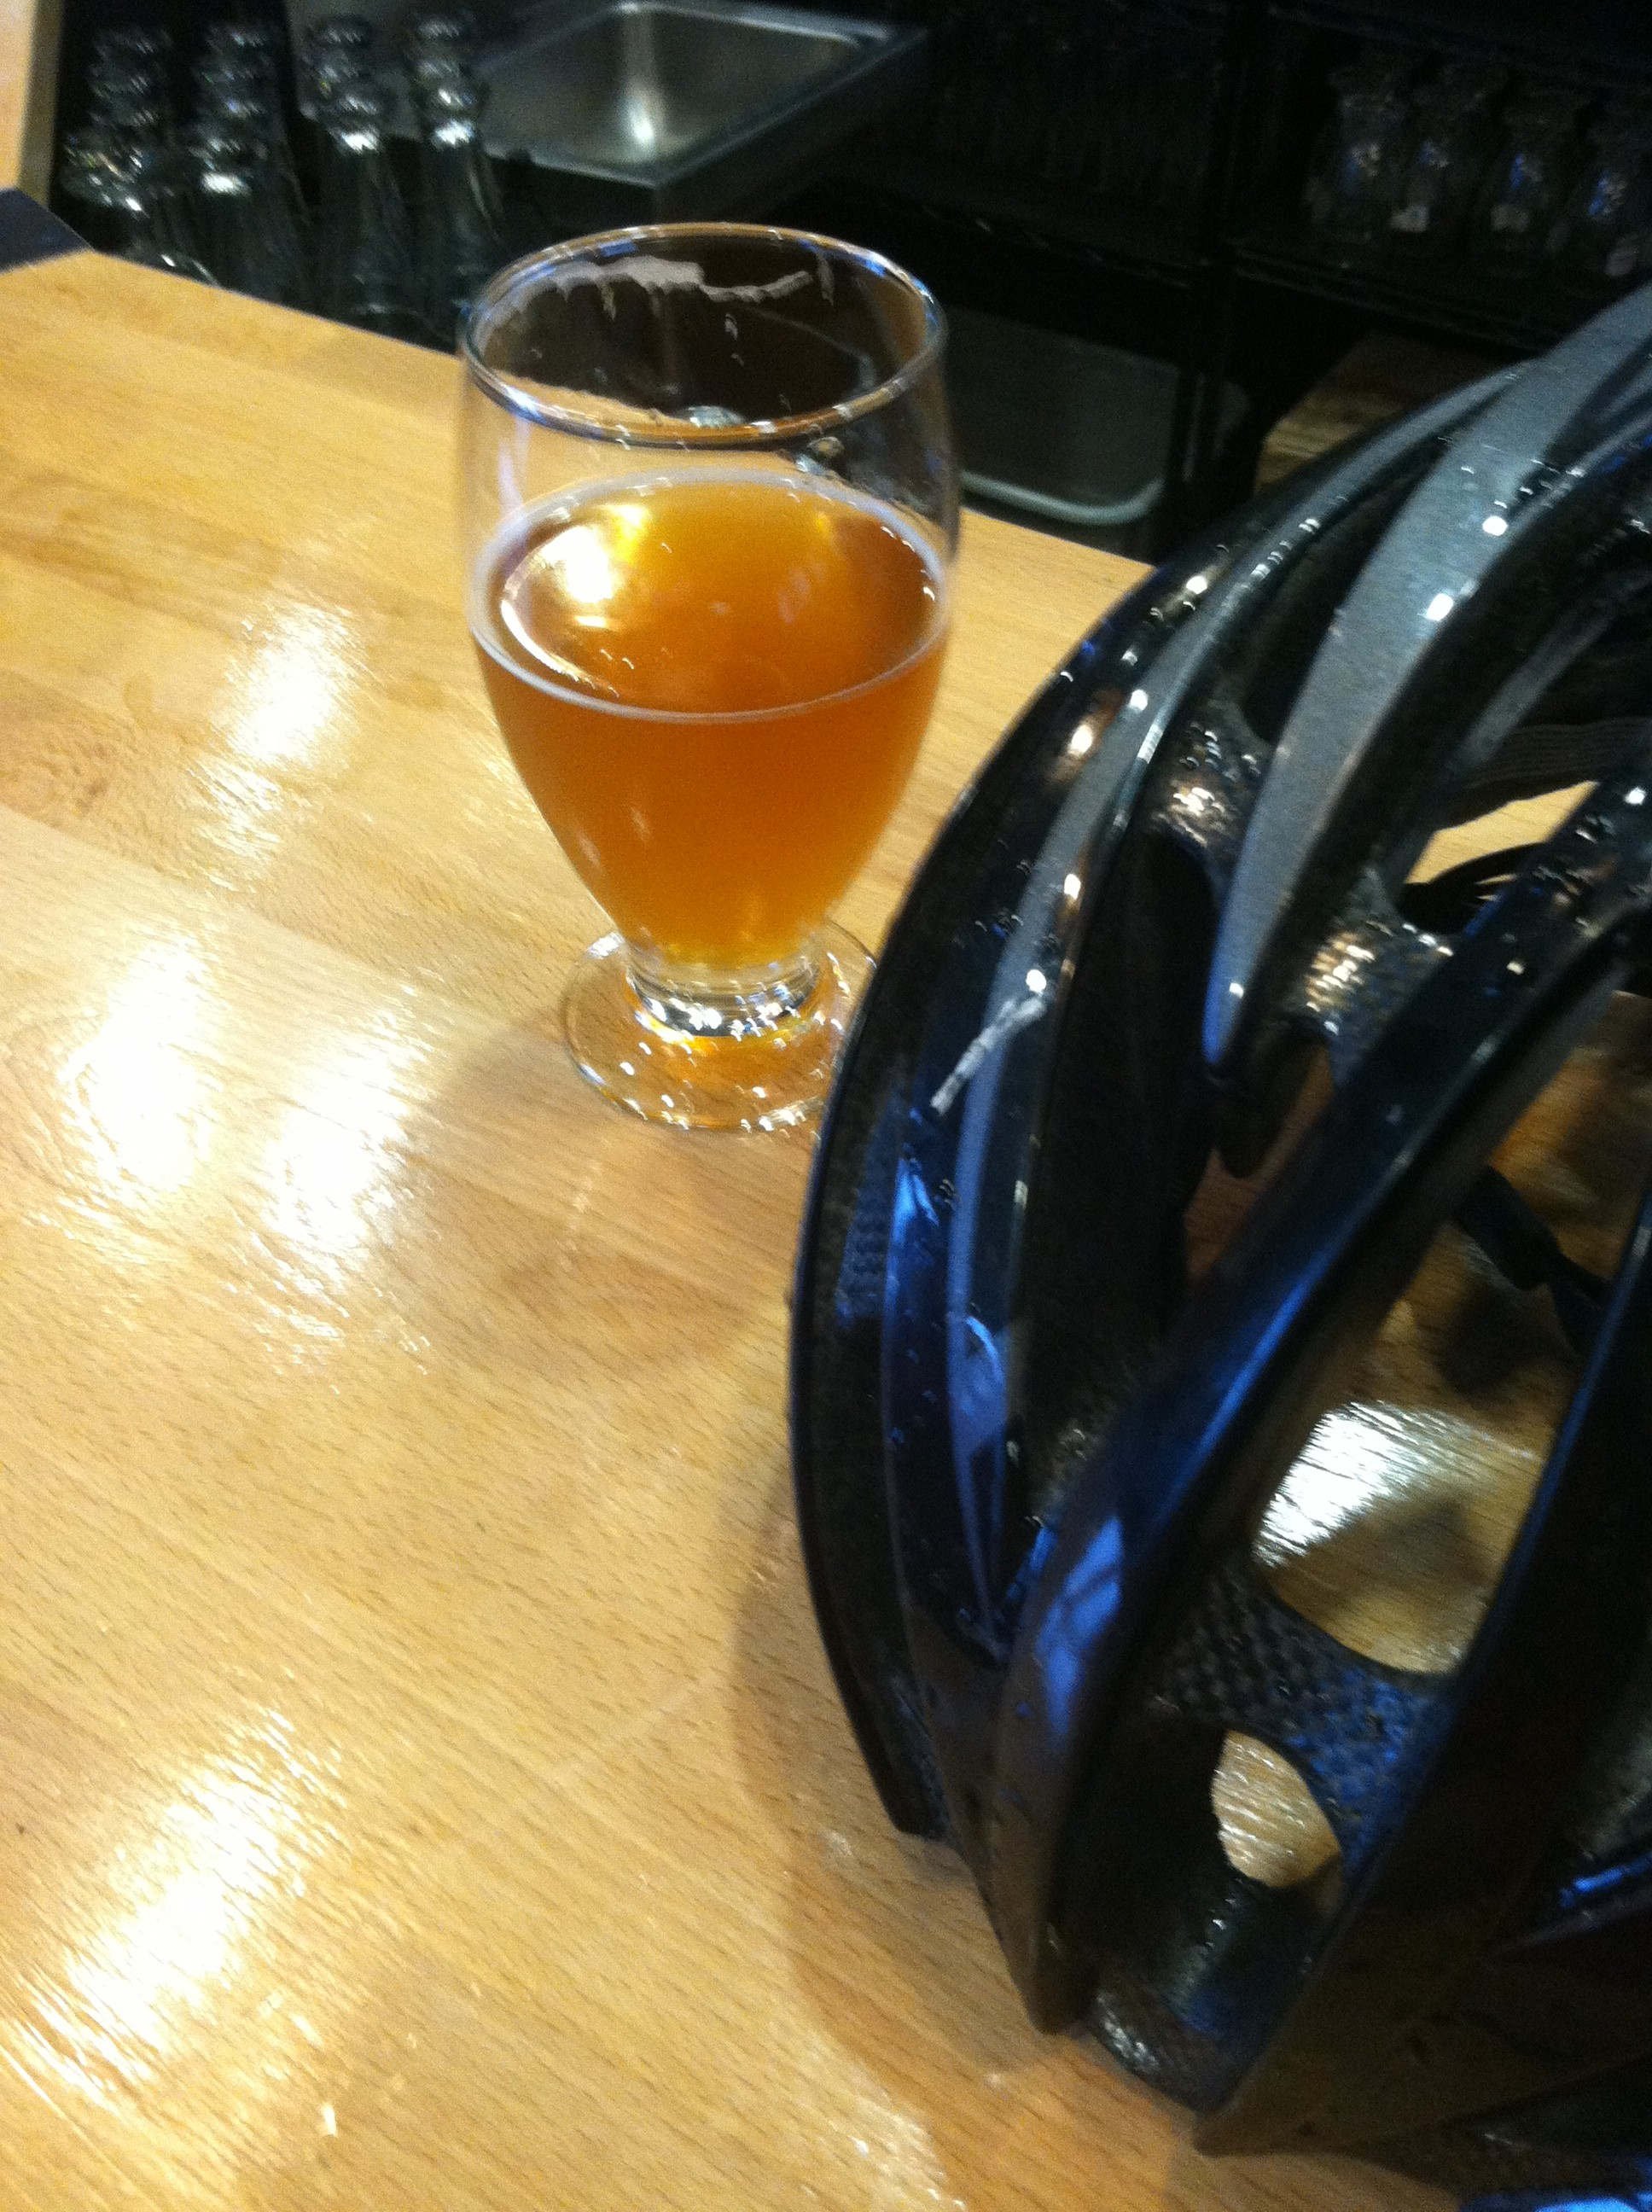 I learned two things: 1) River North's Saison is delicious. 2) Sorority girls are not impressed by soaking wet men in bike helmets.